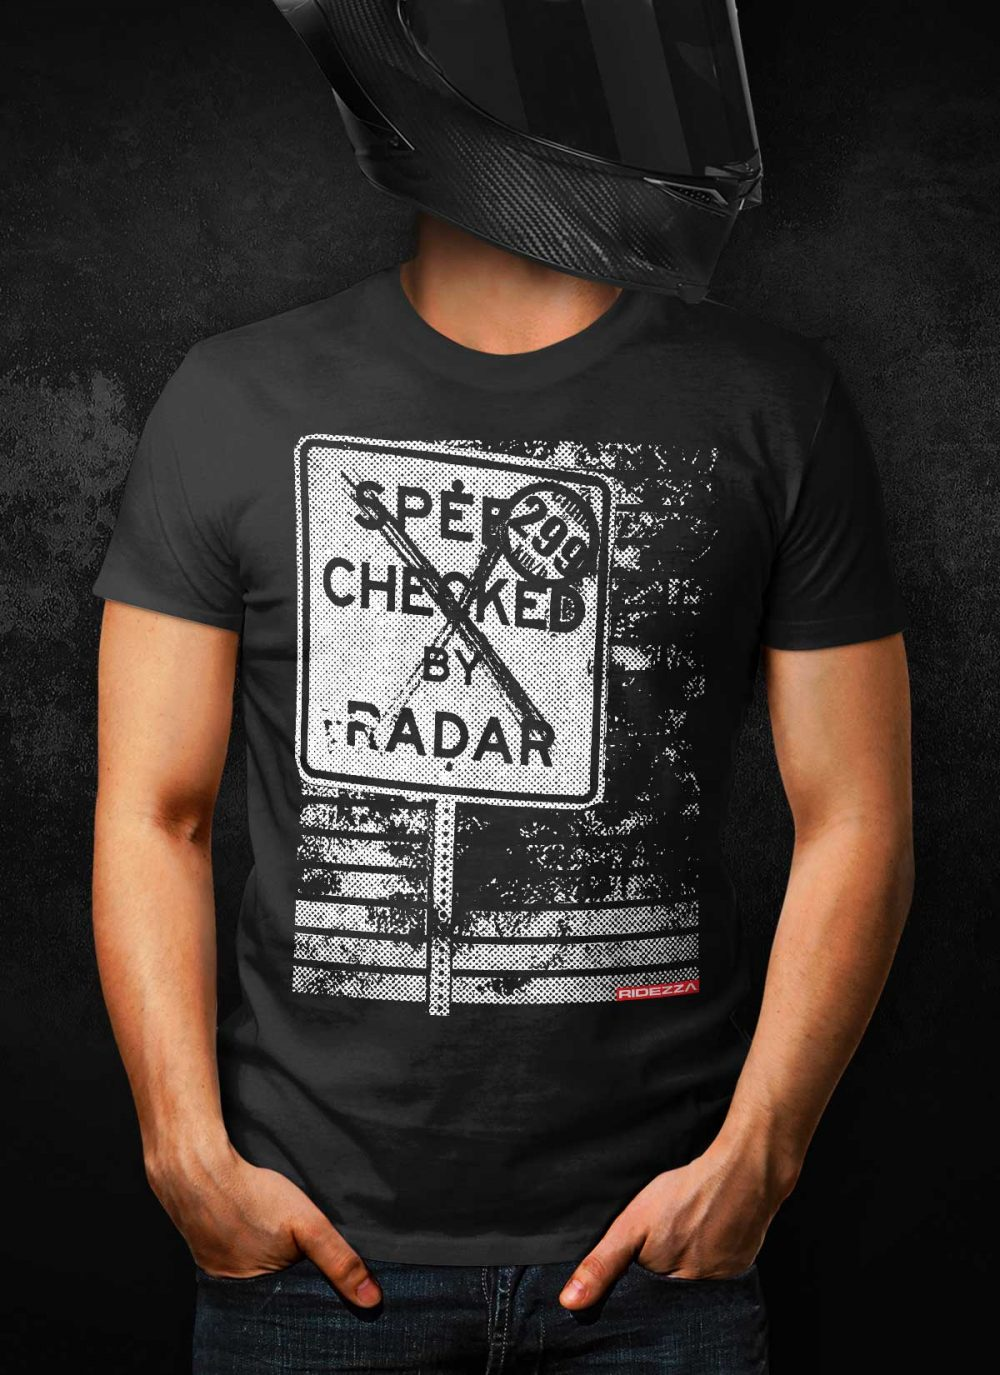 Speed Checked by Radar T-Shirt